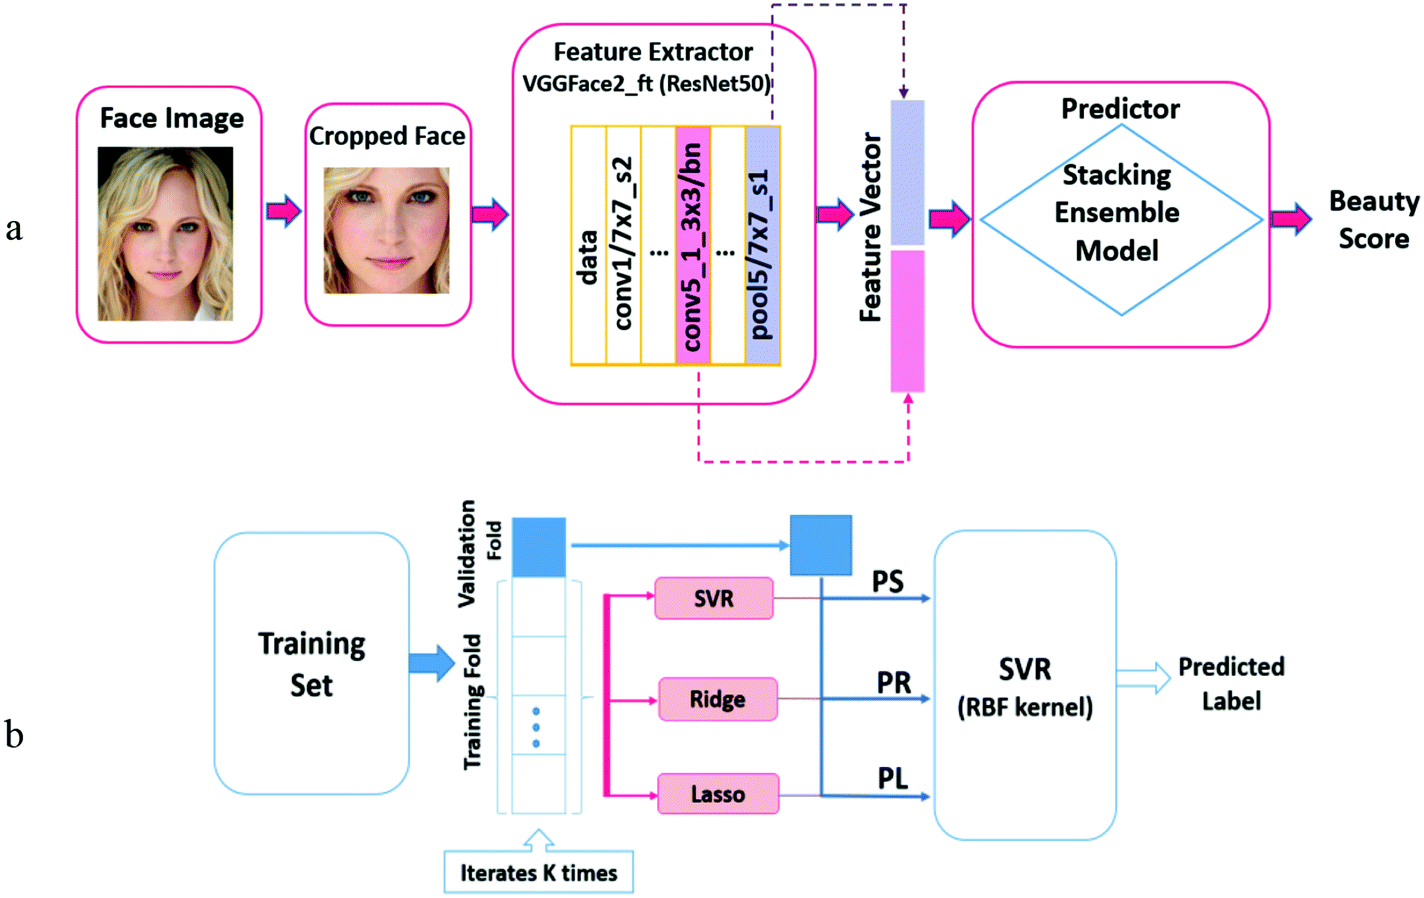 Female Facial Beauty Analysis Using Transfer Learning and